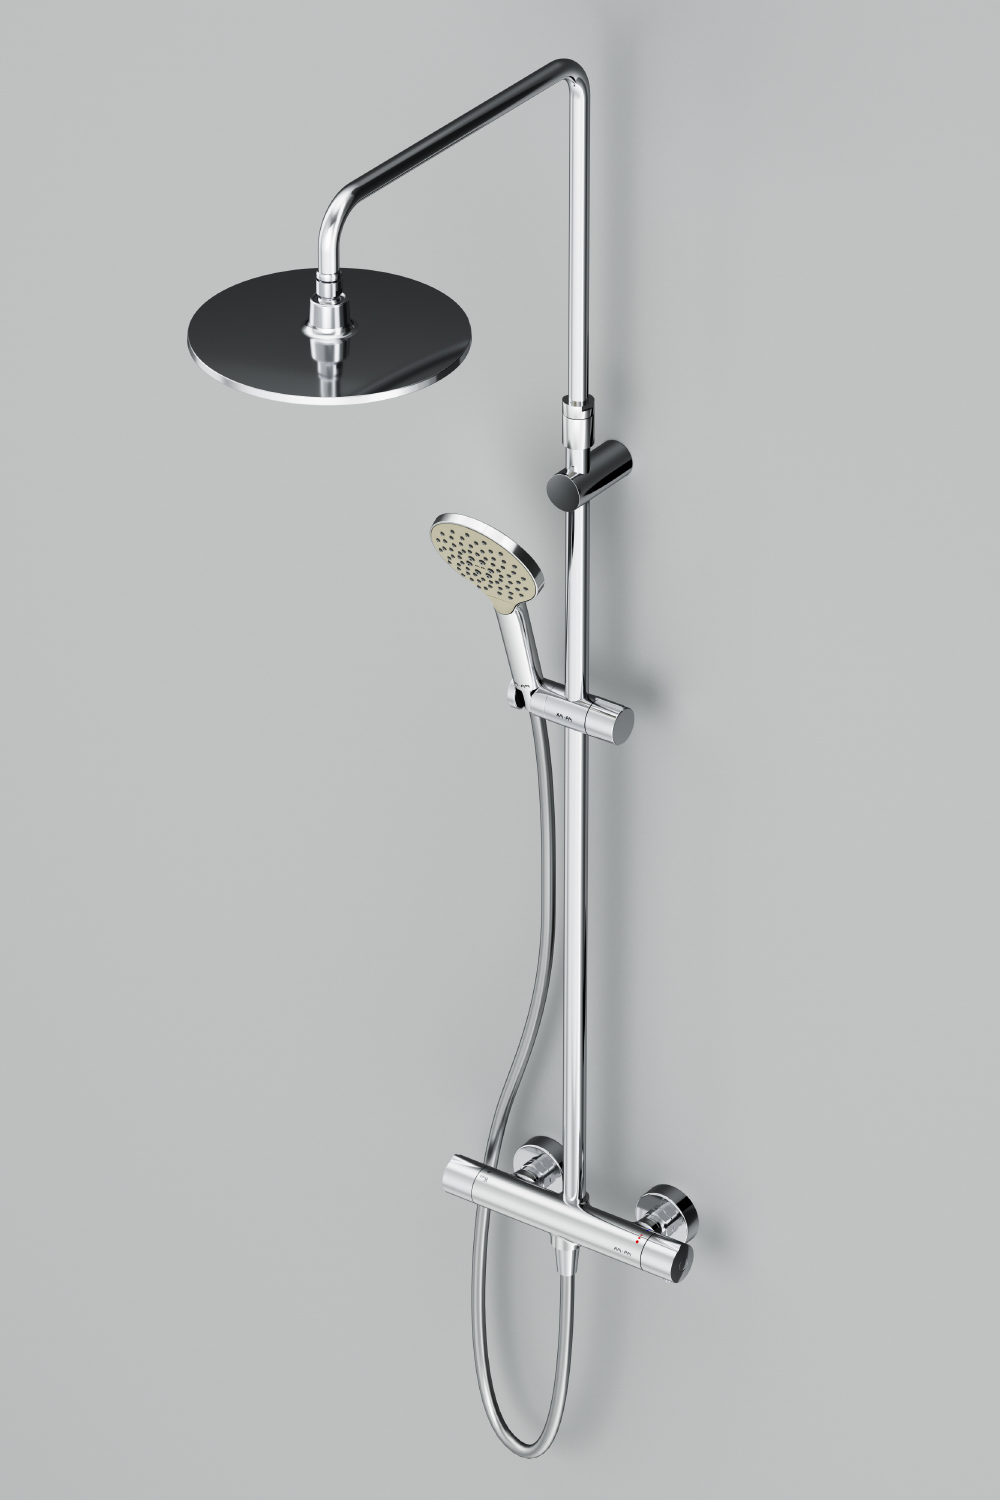 F0780400 ShowerSpot with thermostatic mixer